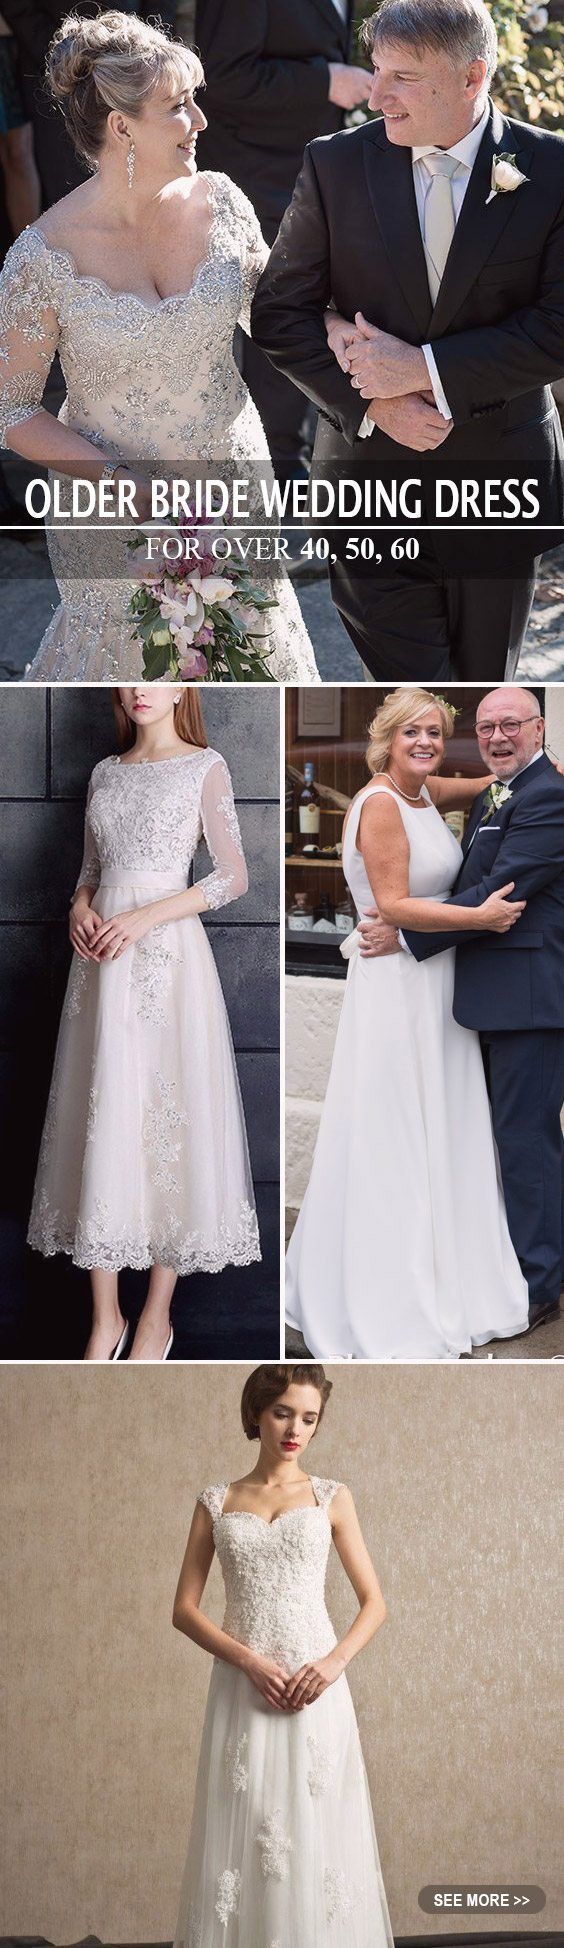 Wedding Dresses for Older Brides over 40, 50, 60, 70